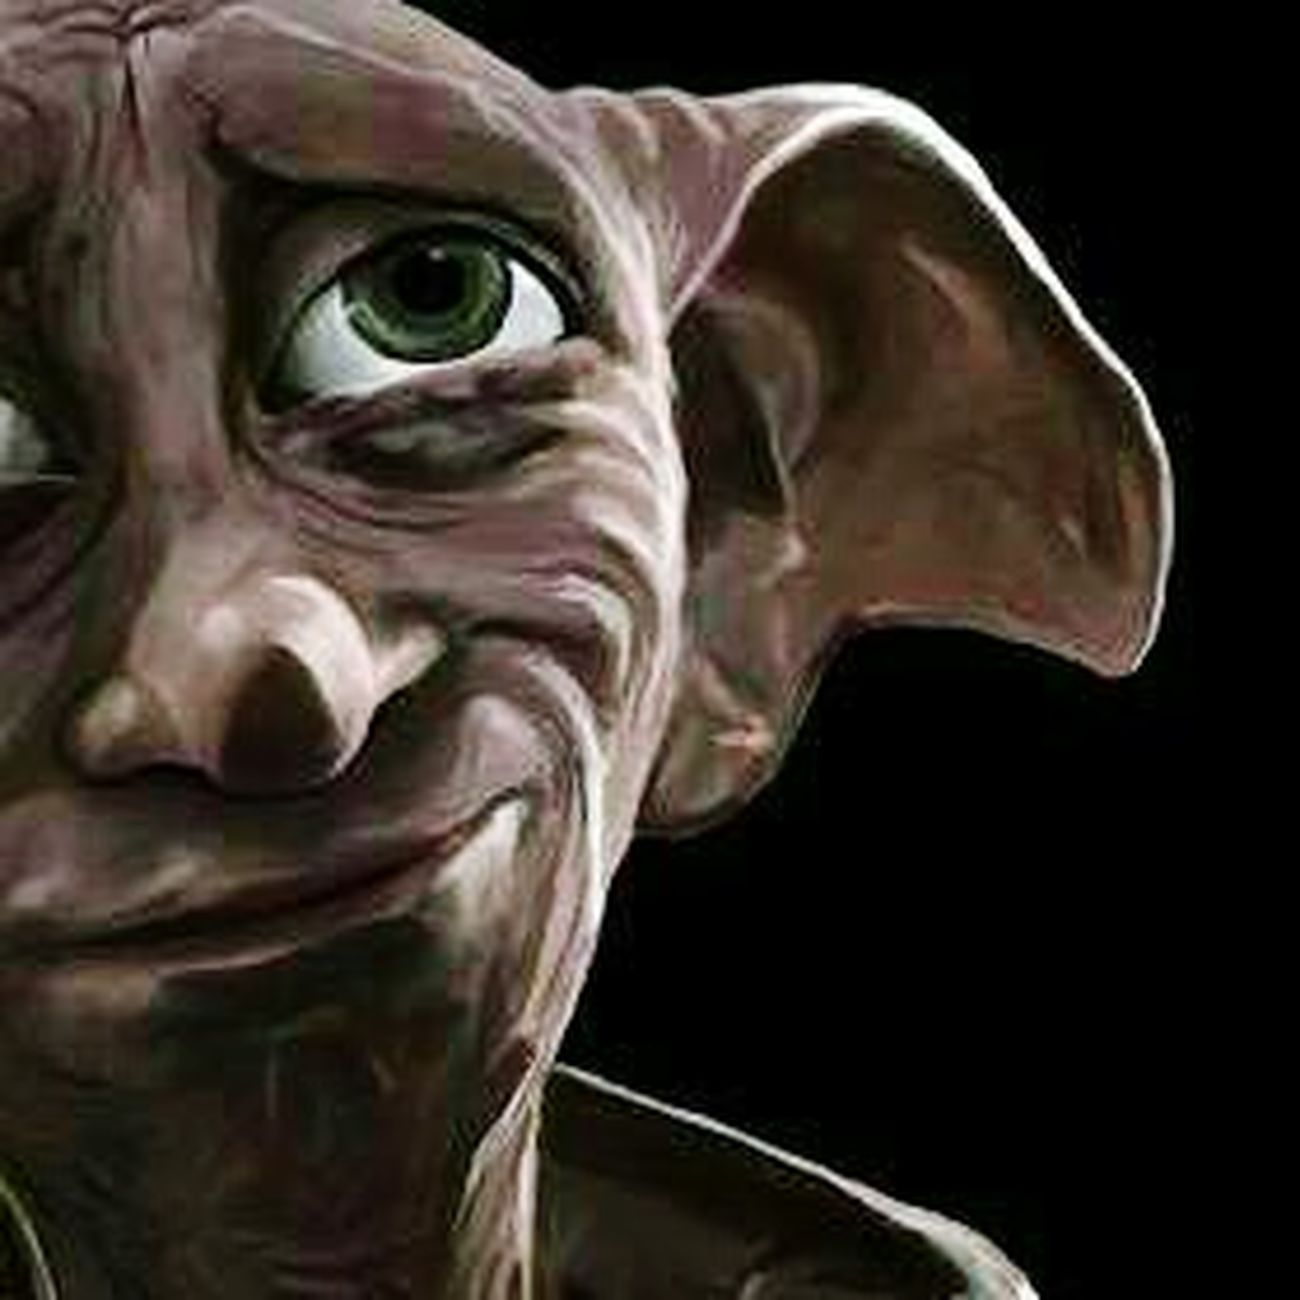 Dobby Harrypotter Harry Potter ⚡ Harry Potter ❤ Dobby Is A Free Elf Dobbyisafreeelf Dobby Word Lekker Bederf! ;)